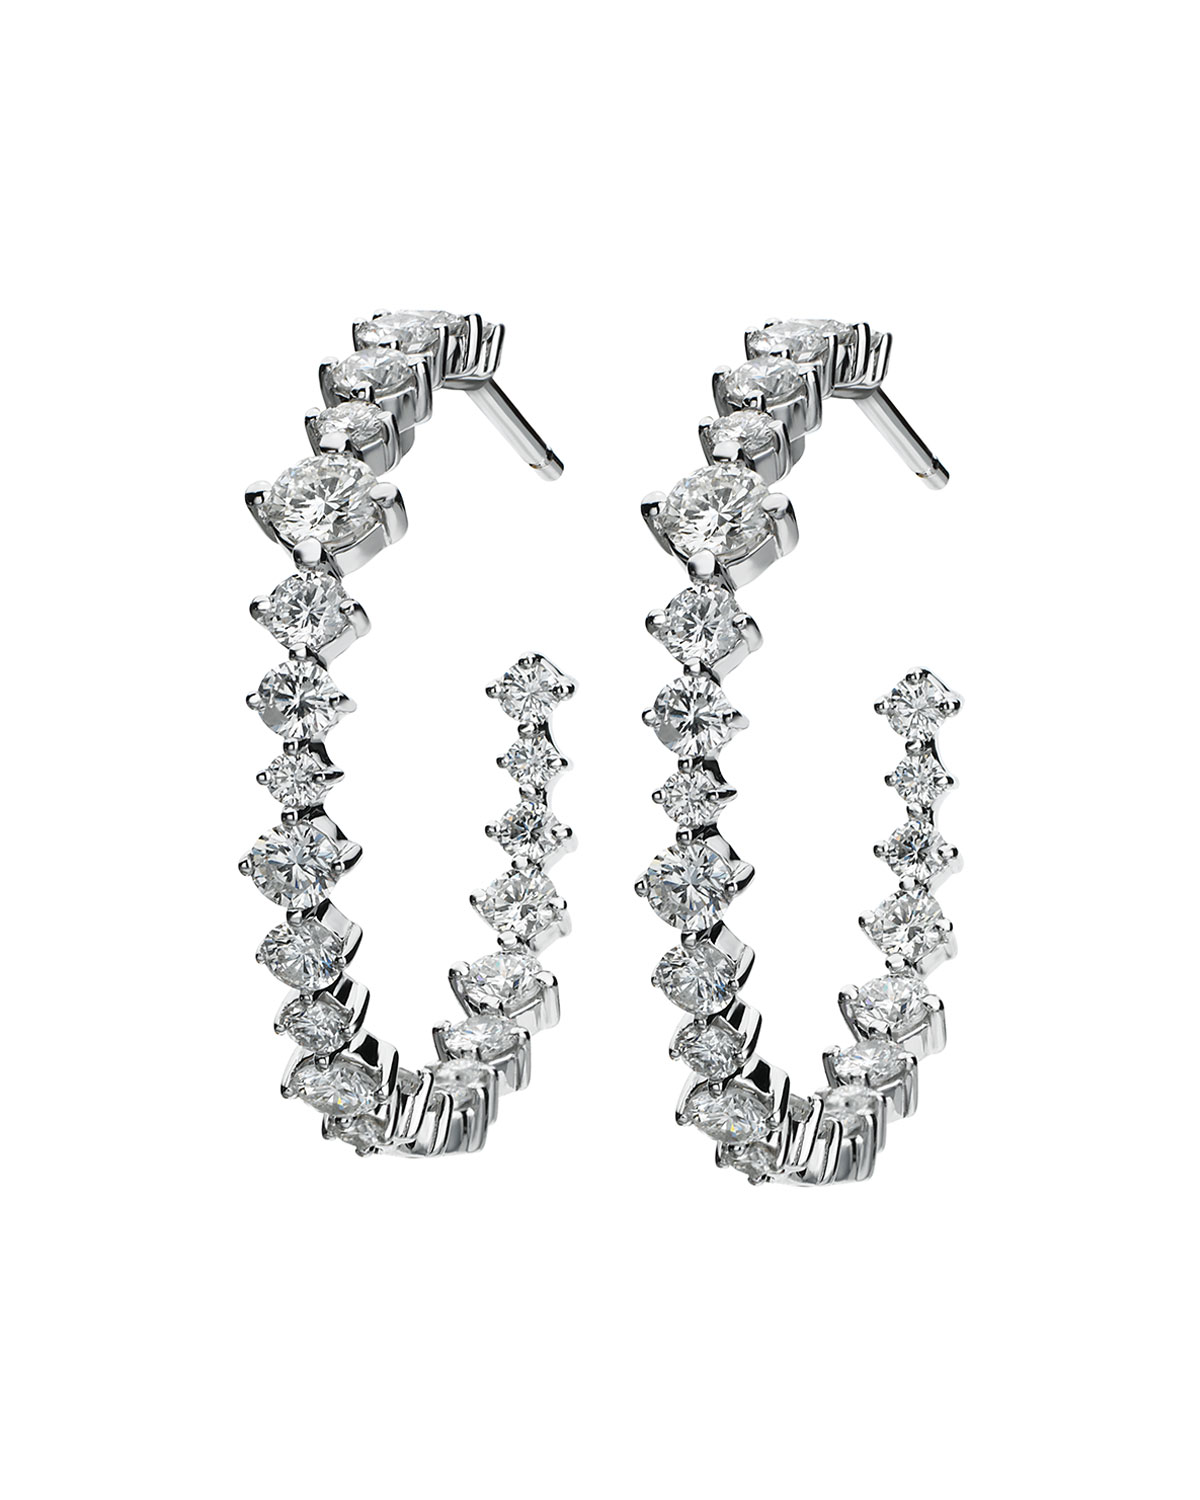 MARIA CANALE HOOPS MIXED-SIZE DIAMOND EARRINGS